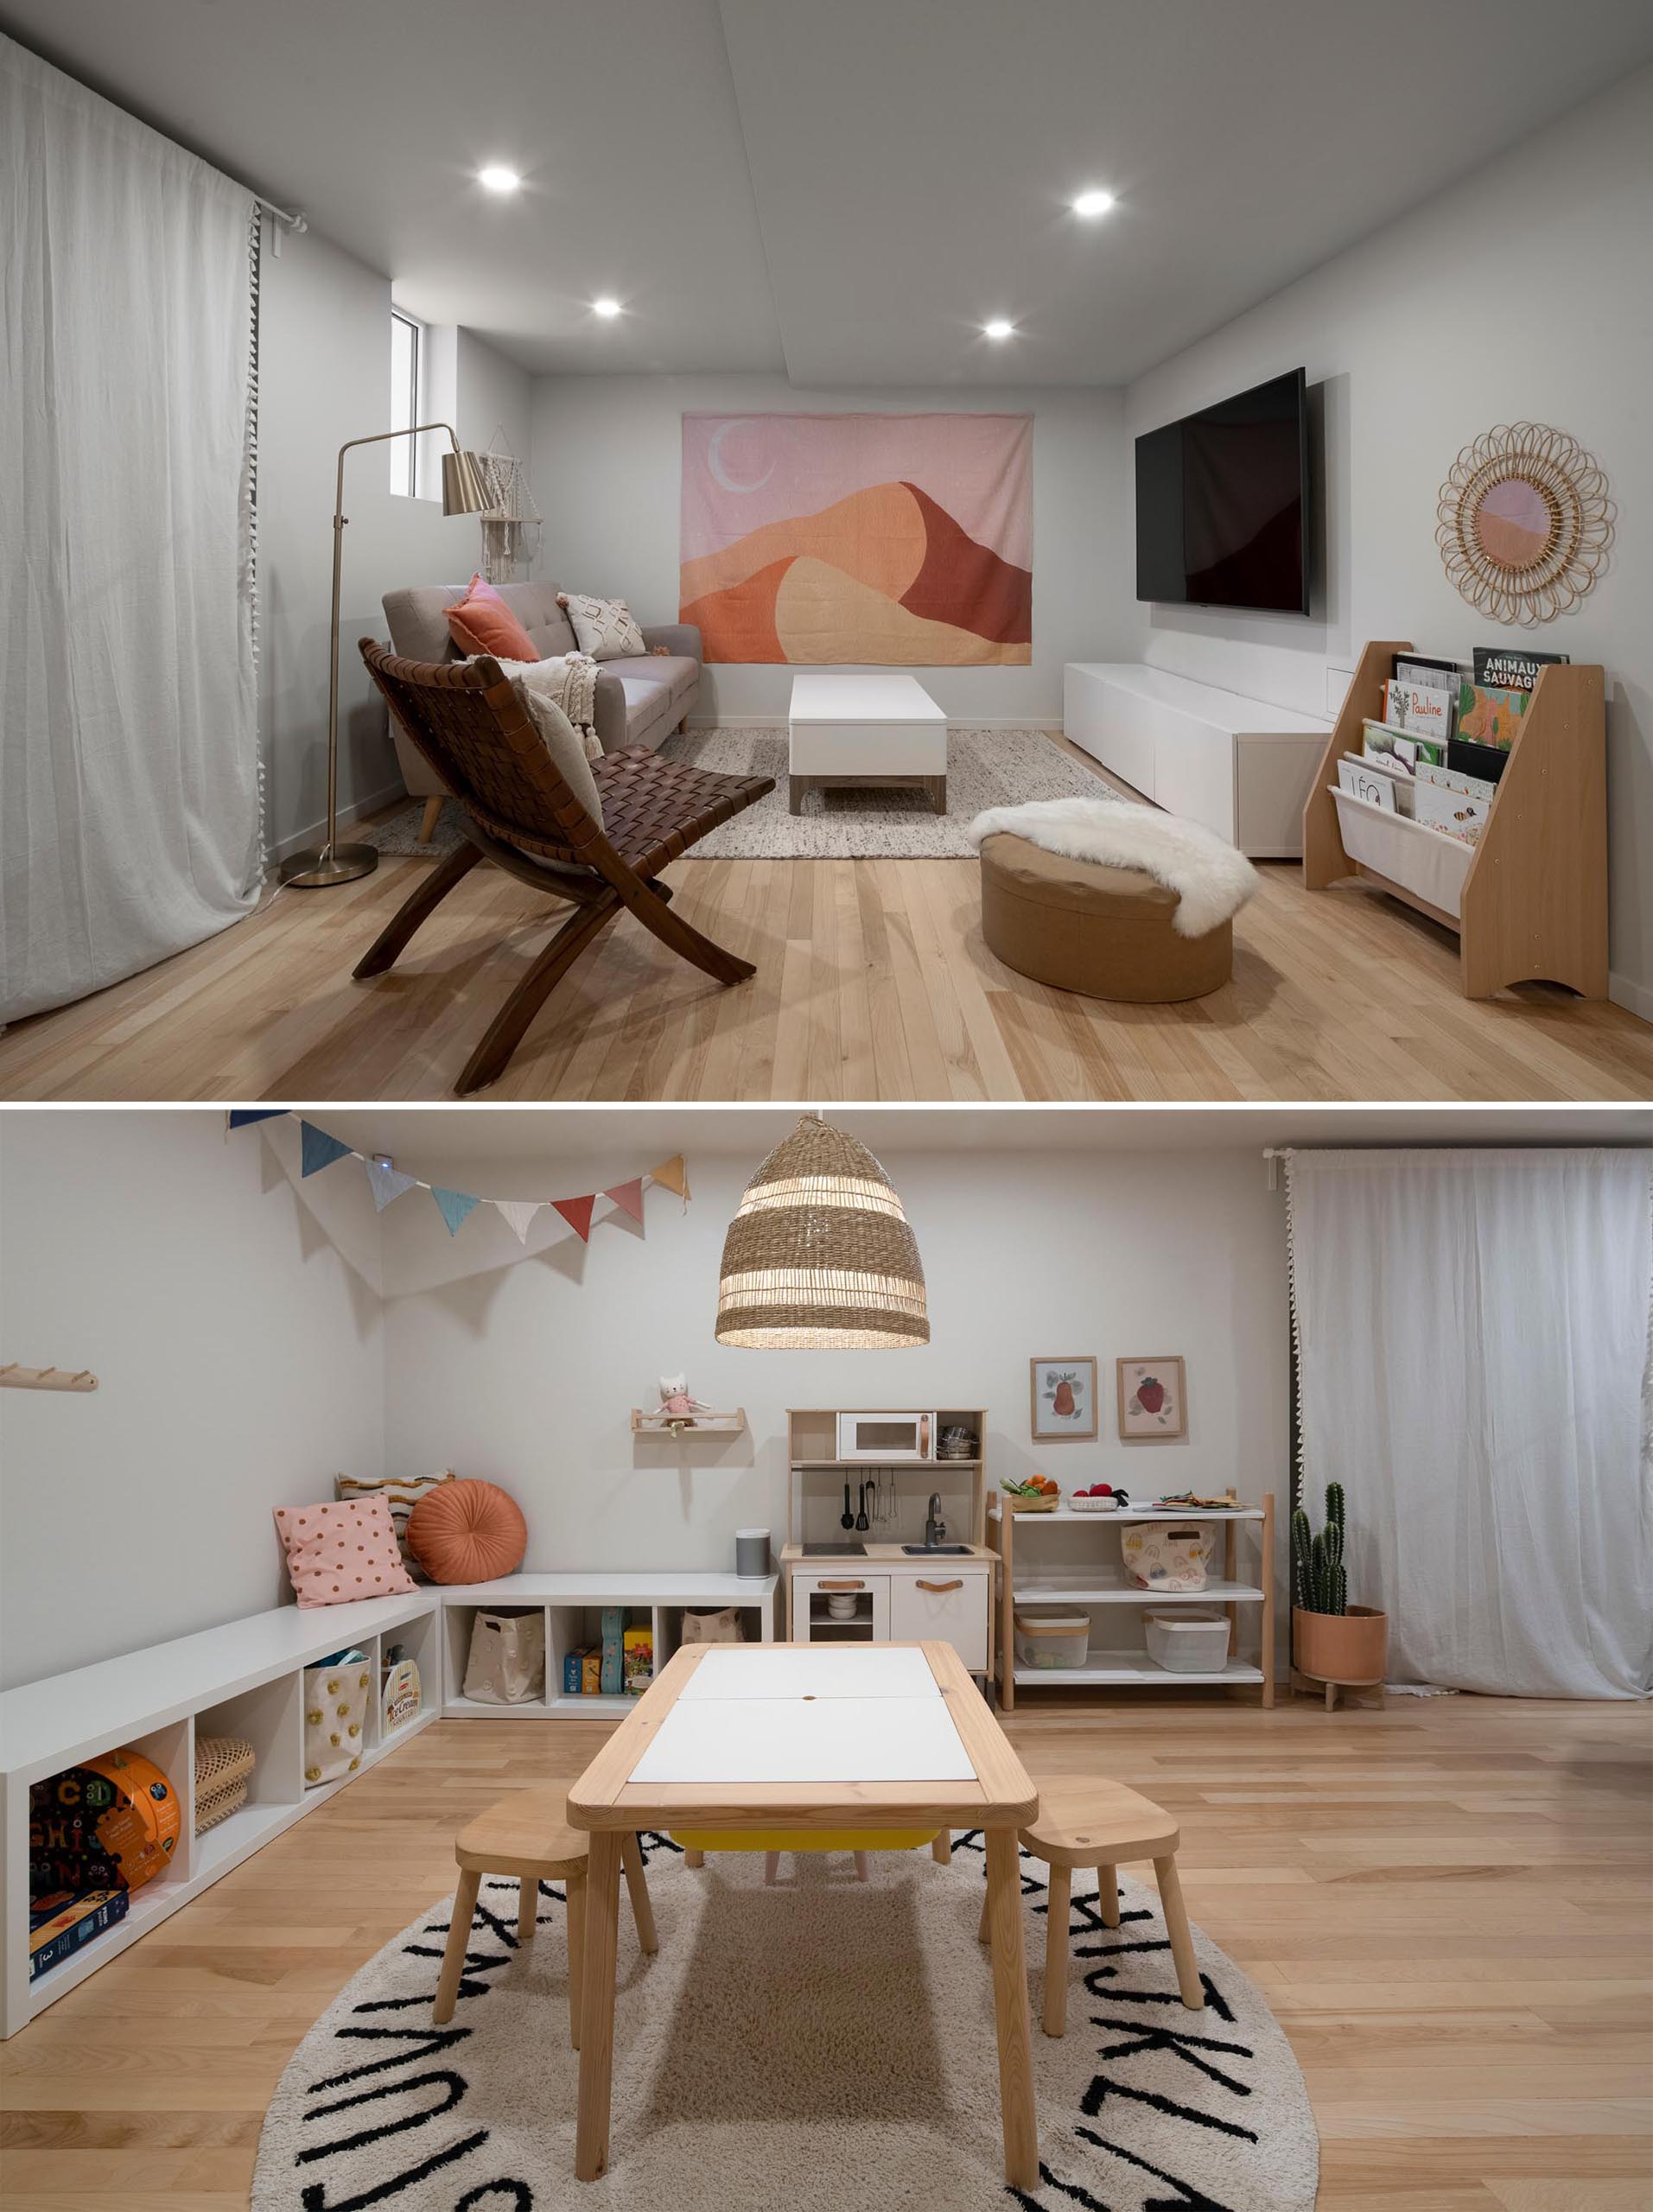 A modern basement with a combined TV room and playroom.